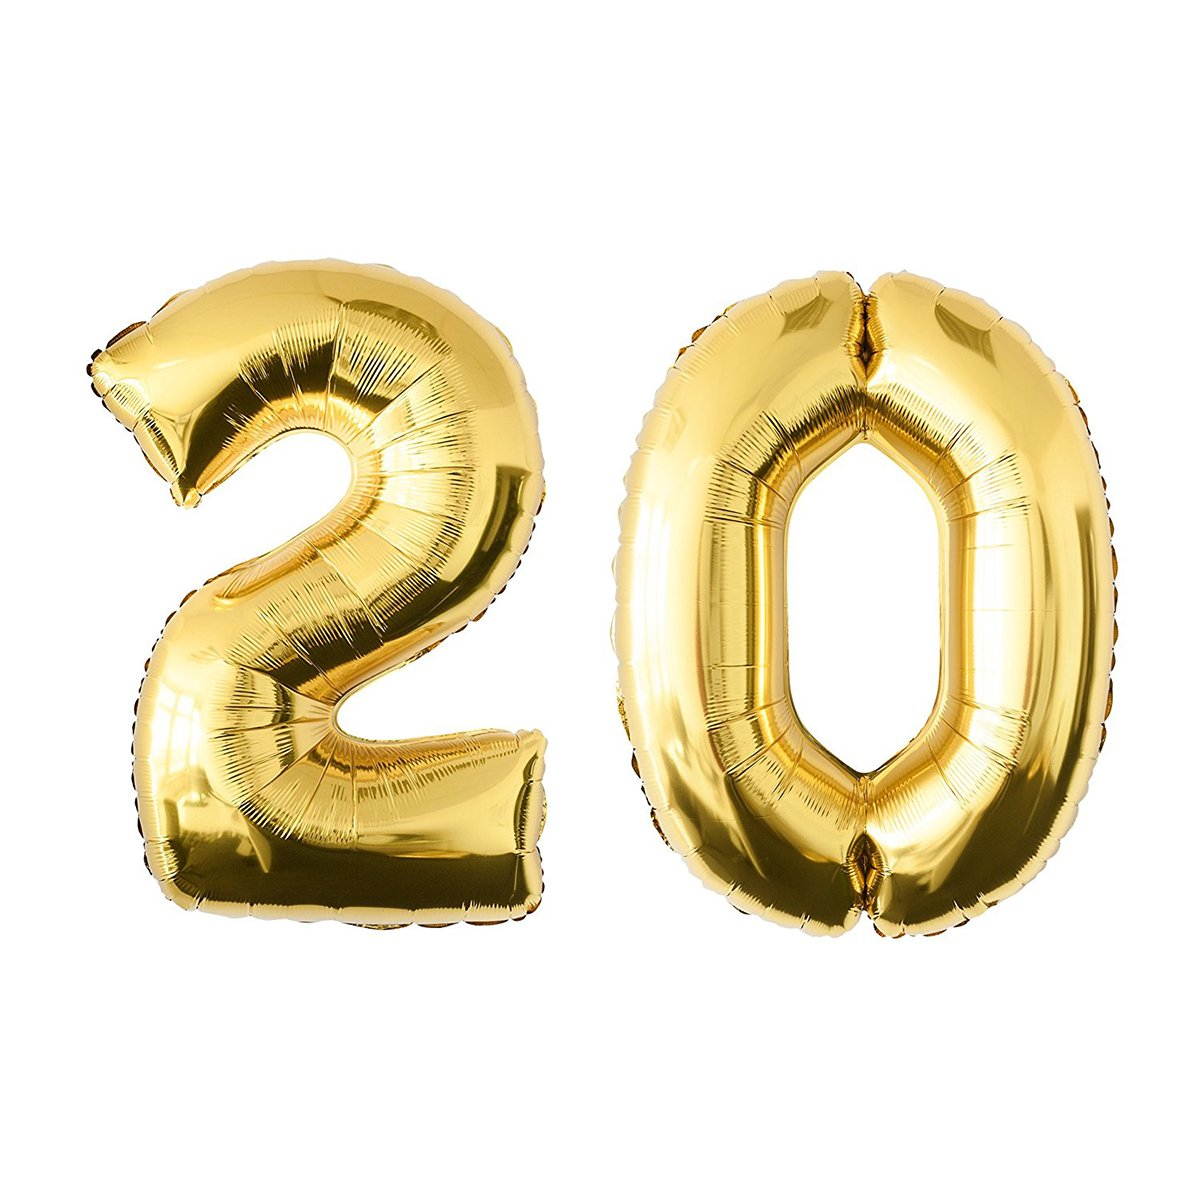 NUOLUX 52.49 Inch Gold Foil Balloon, Jumbo Number 30th Balloon for Festival Birthday Anniversary Party Decorations Photo Props